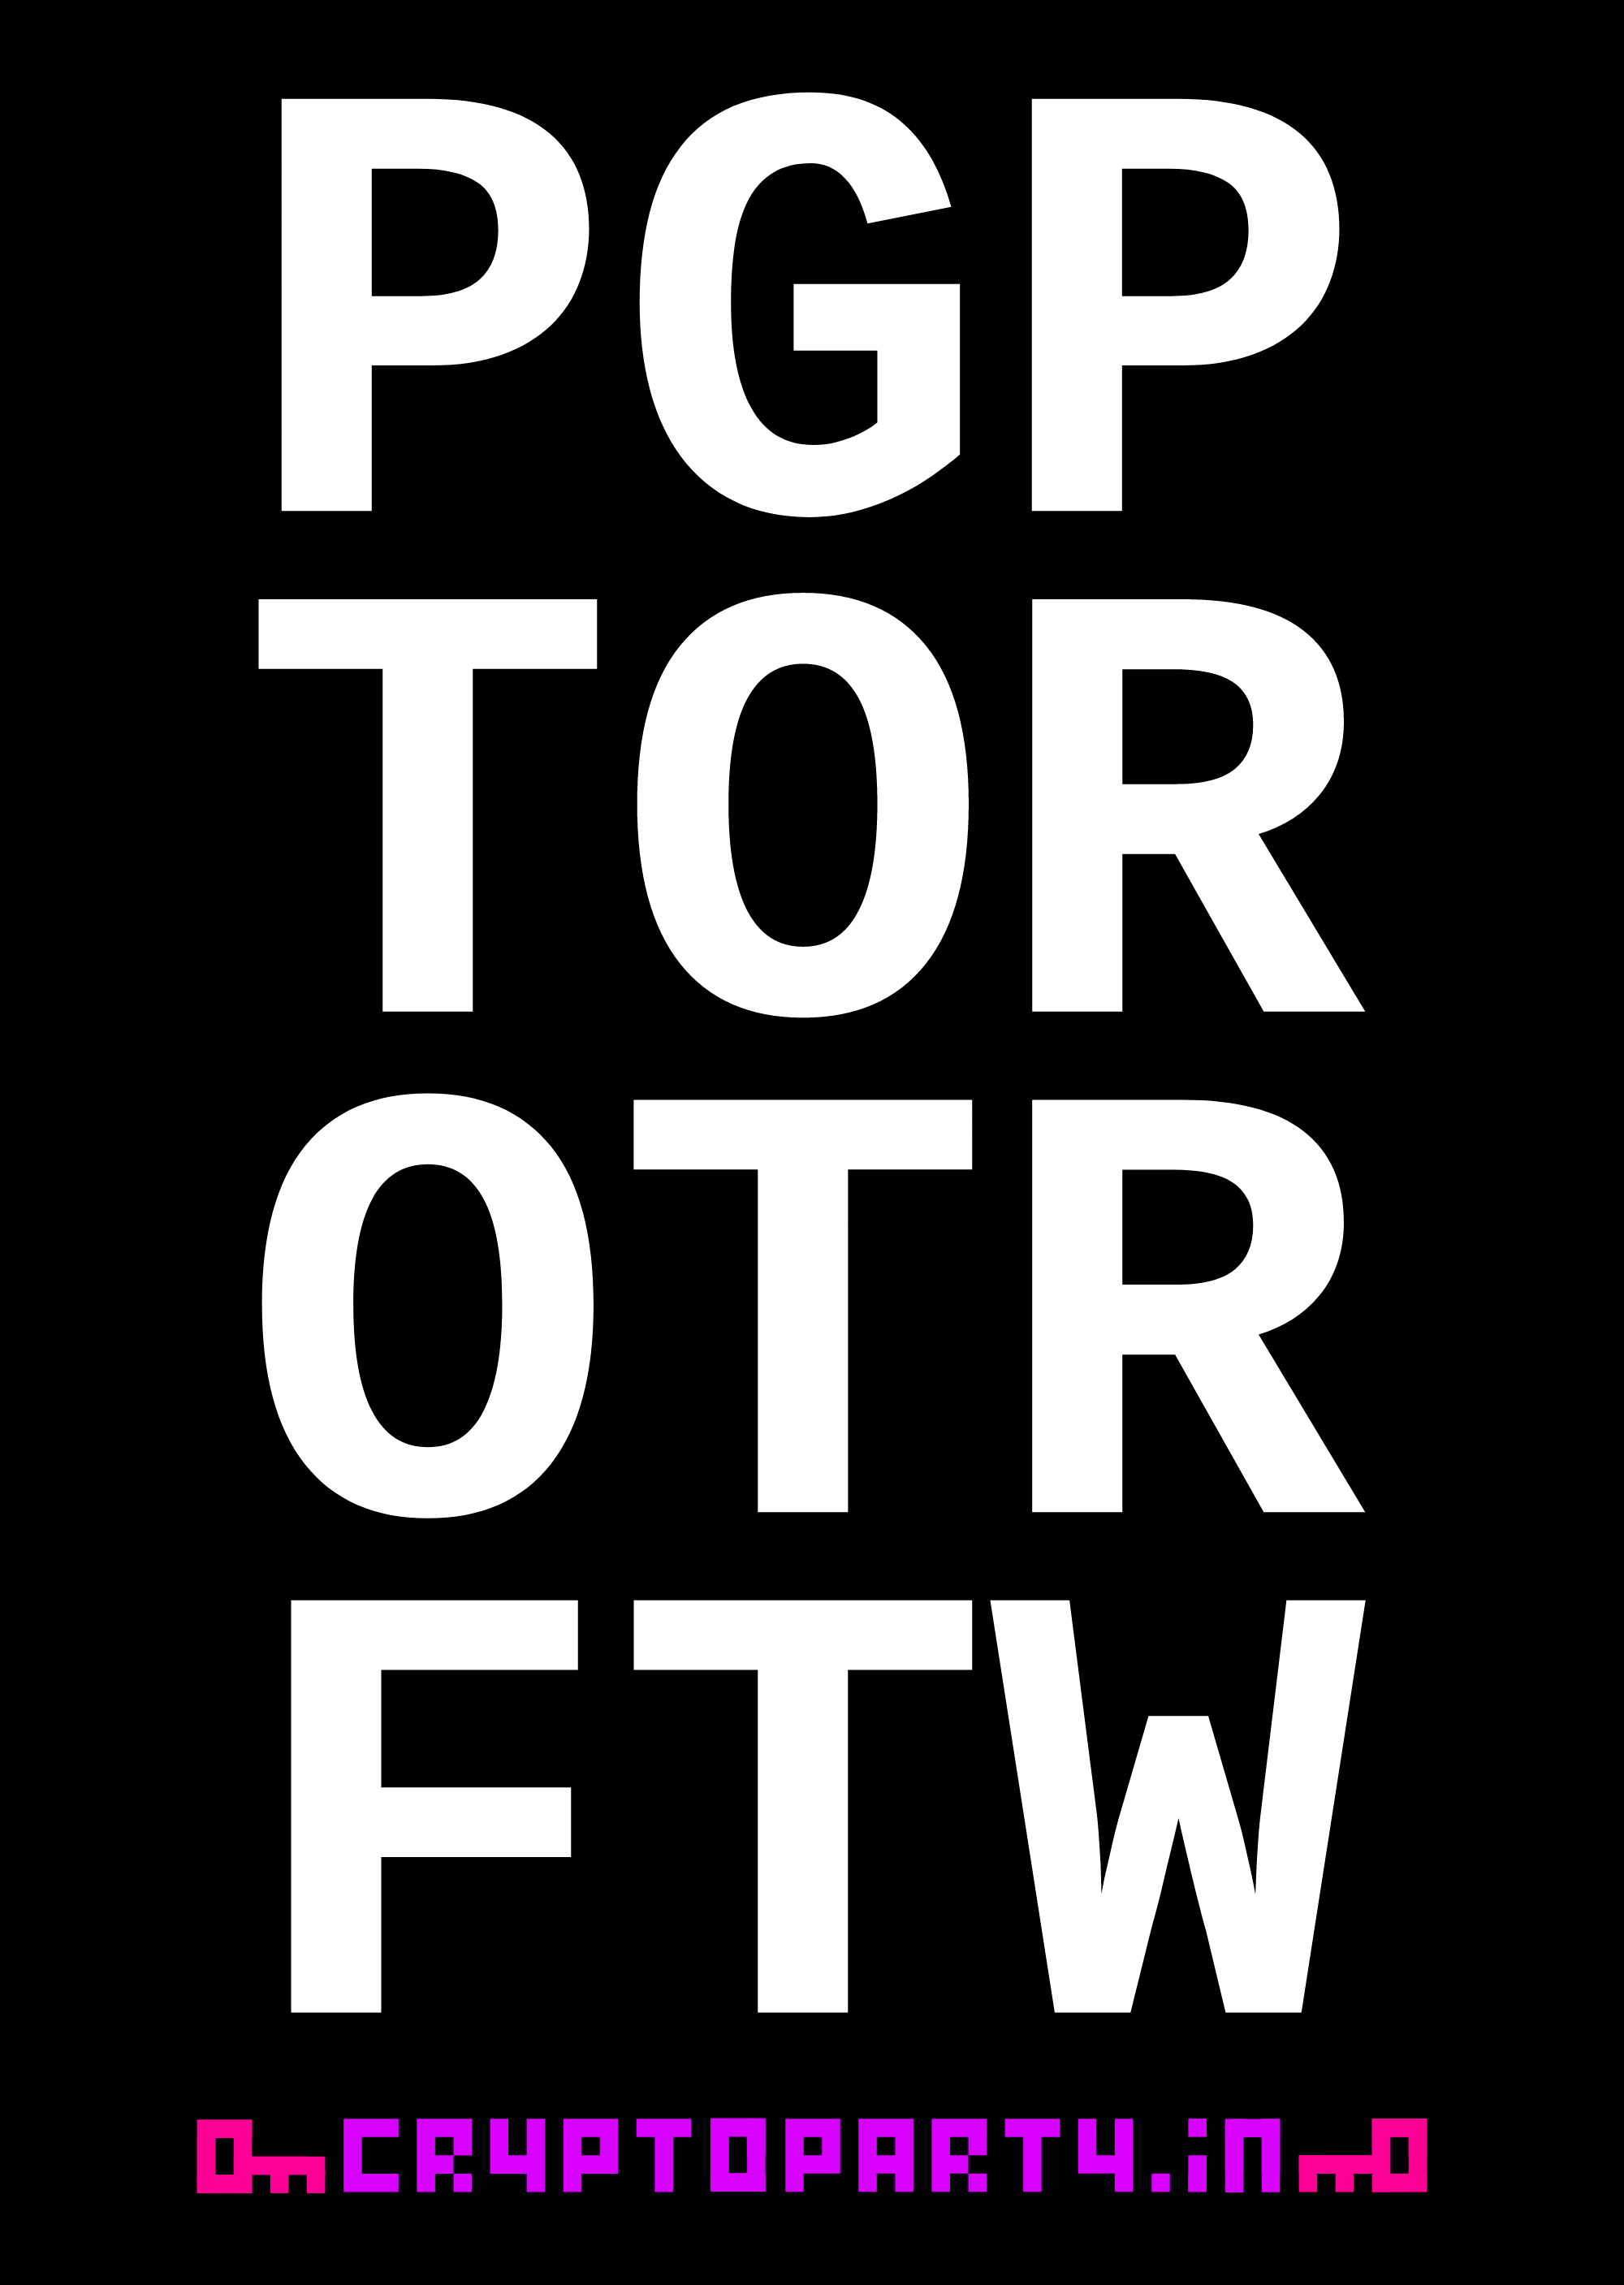 pgp tor otr ftw - cryptoparty.in